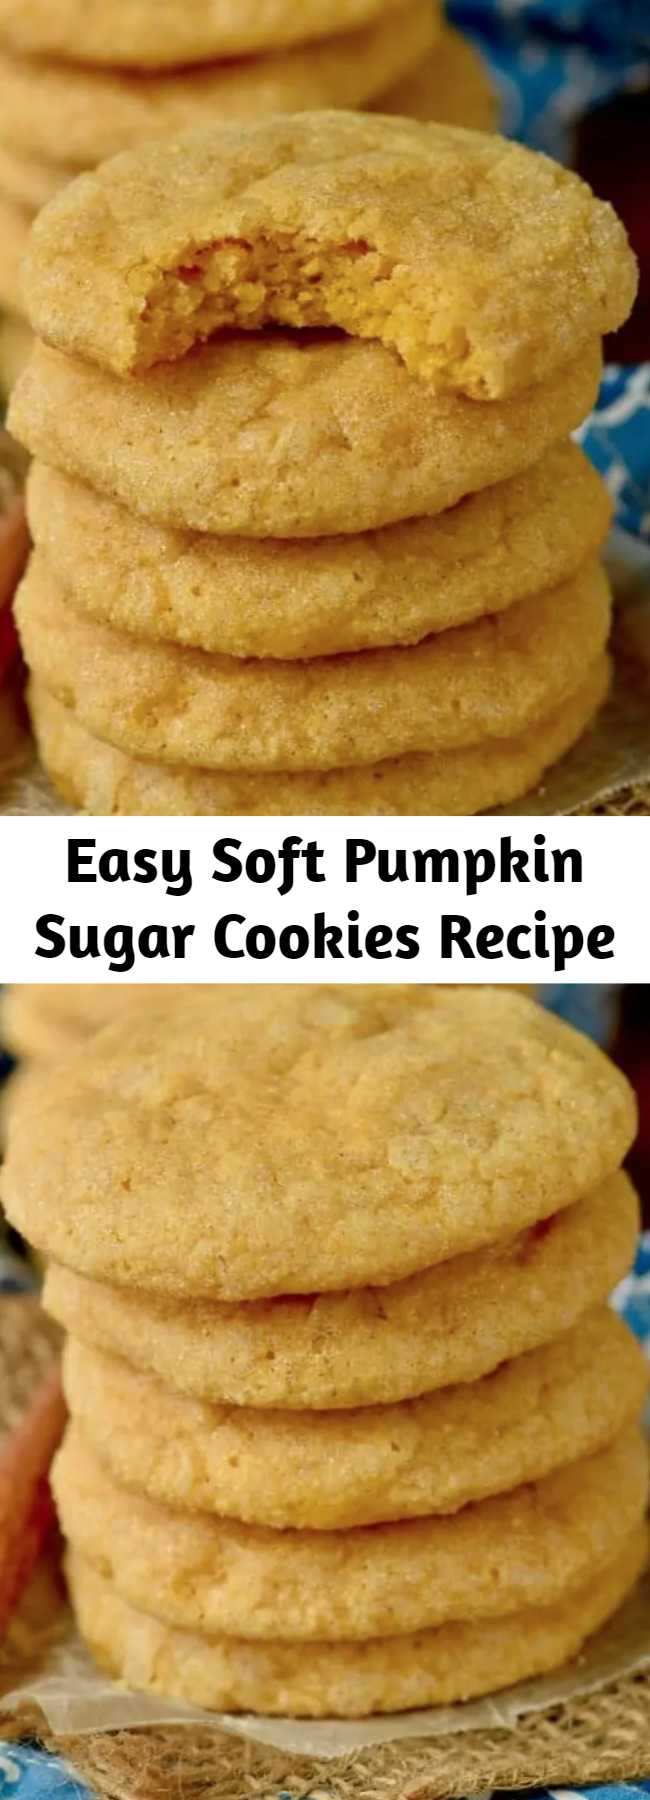 Easy Soft Pumpkin Sugar Cookies Recipe - Pumpkin Sugar Cookies are absolutely amazing! Deliciously soft sugar cookies, full of pumpkin fall flavor! This easy pumpkin cookies recipe is bound to become a family favorite!